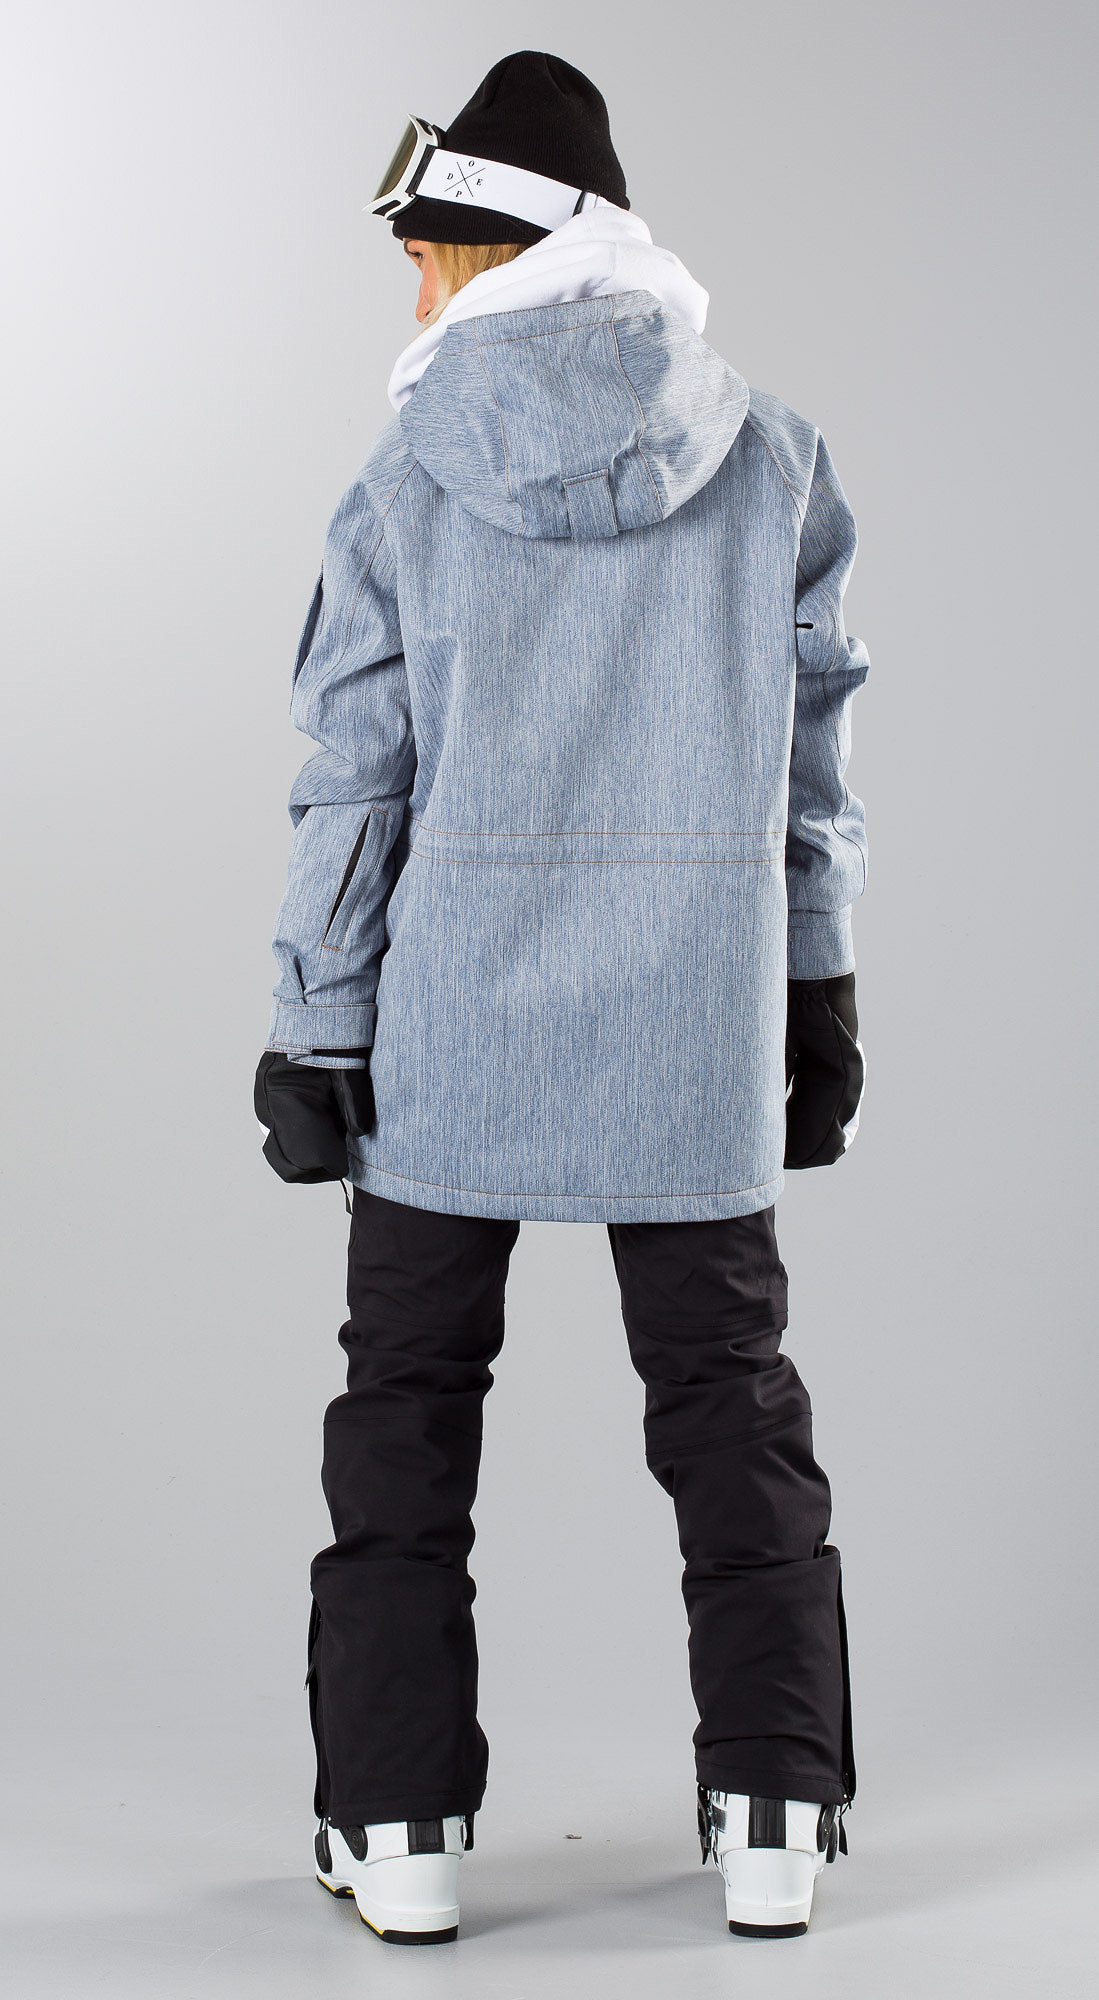 ad55be8700c154 Dope Annok W Blue Denim Ski clothing - Ridestore